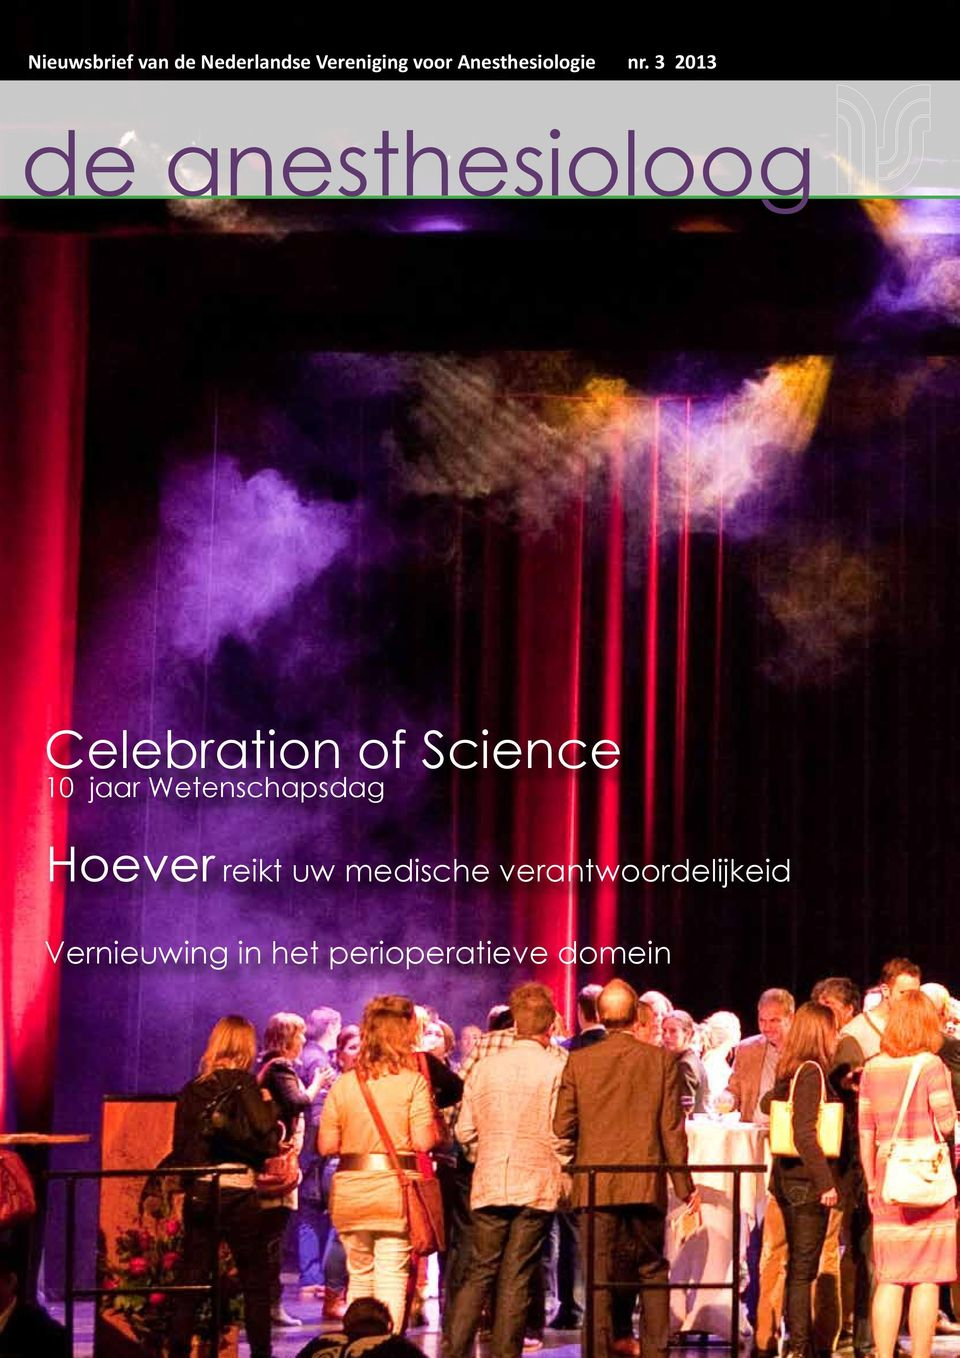 3 2013 de anesthesioloog Celebration of Science 10 jaar